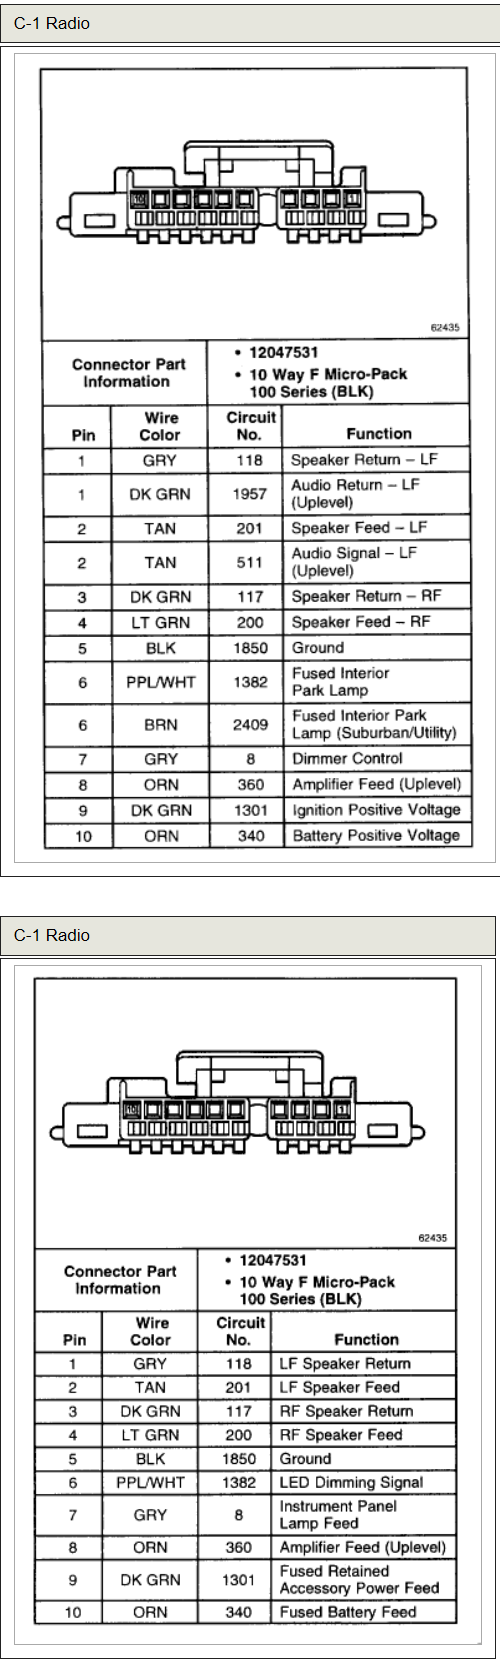 Audio Wiring Diagram For 2000 Chevy Cavalier - Wiring Diagram Operation  context - context.cantierisanrocco.itcantierisanrocco.it